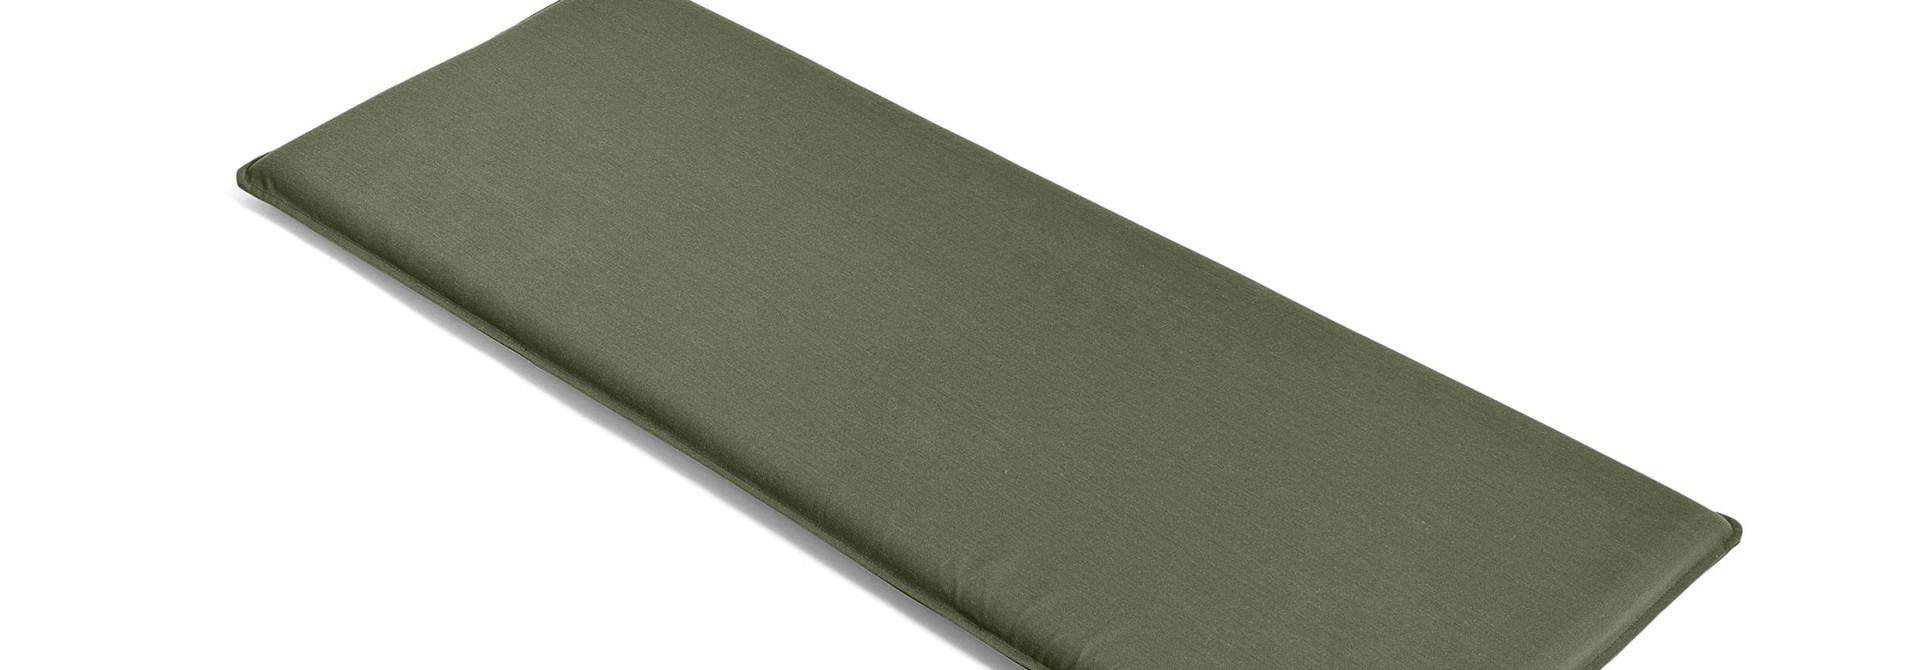 Palissade seat cushion for Dining bench